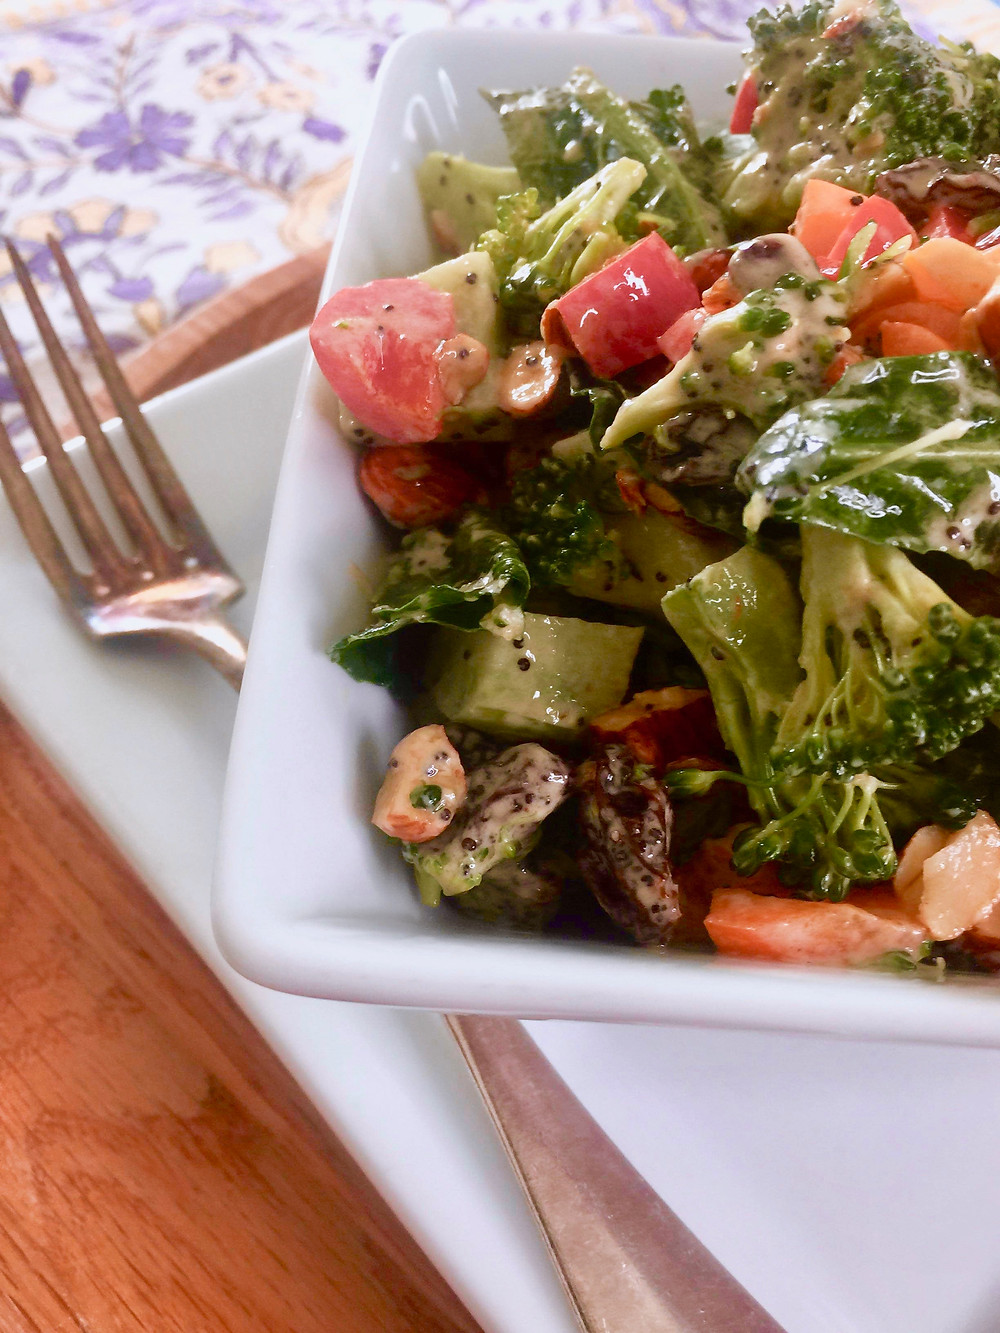 Broccoli salad with tahini poppy seed dressing in a bowl with a fork on the side